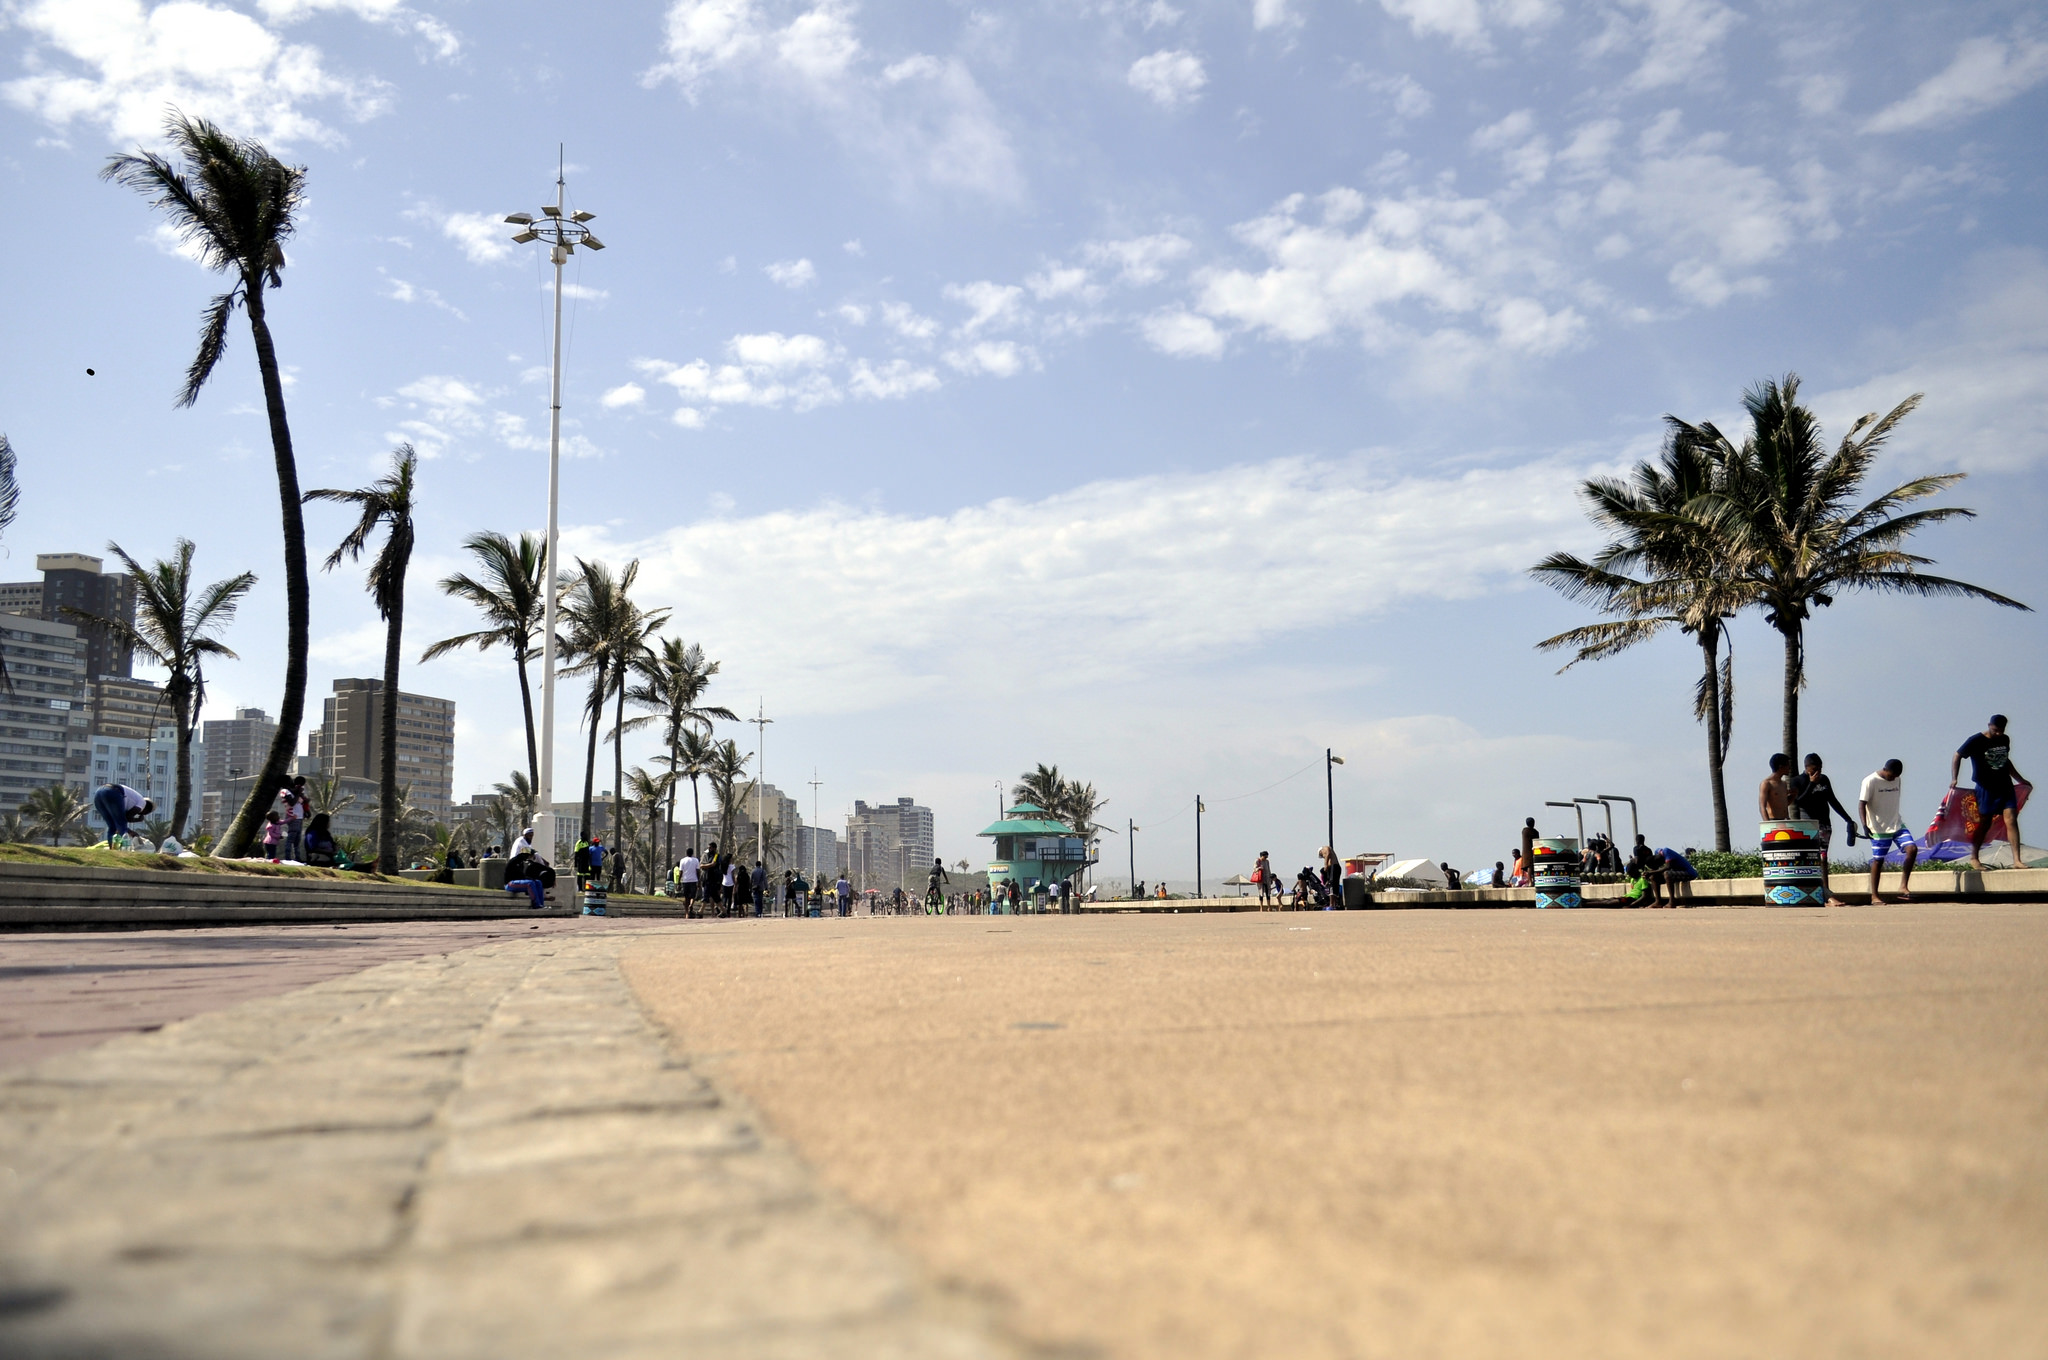 """Durban Beach"" by Darren Glanville via Flickr Creative Commons"